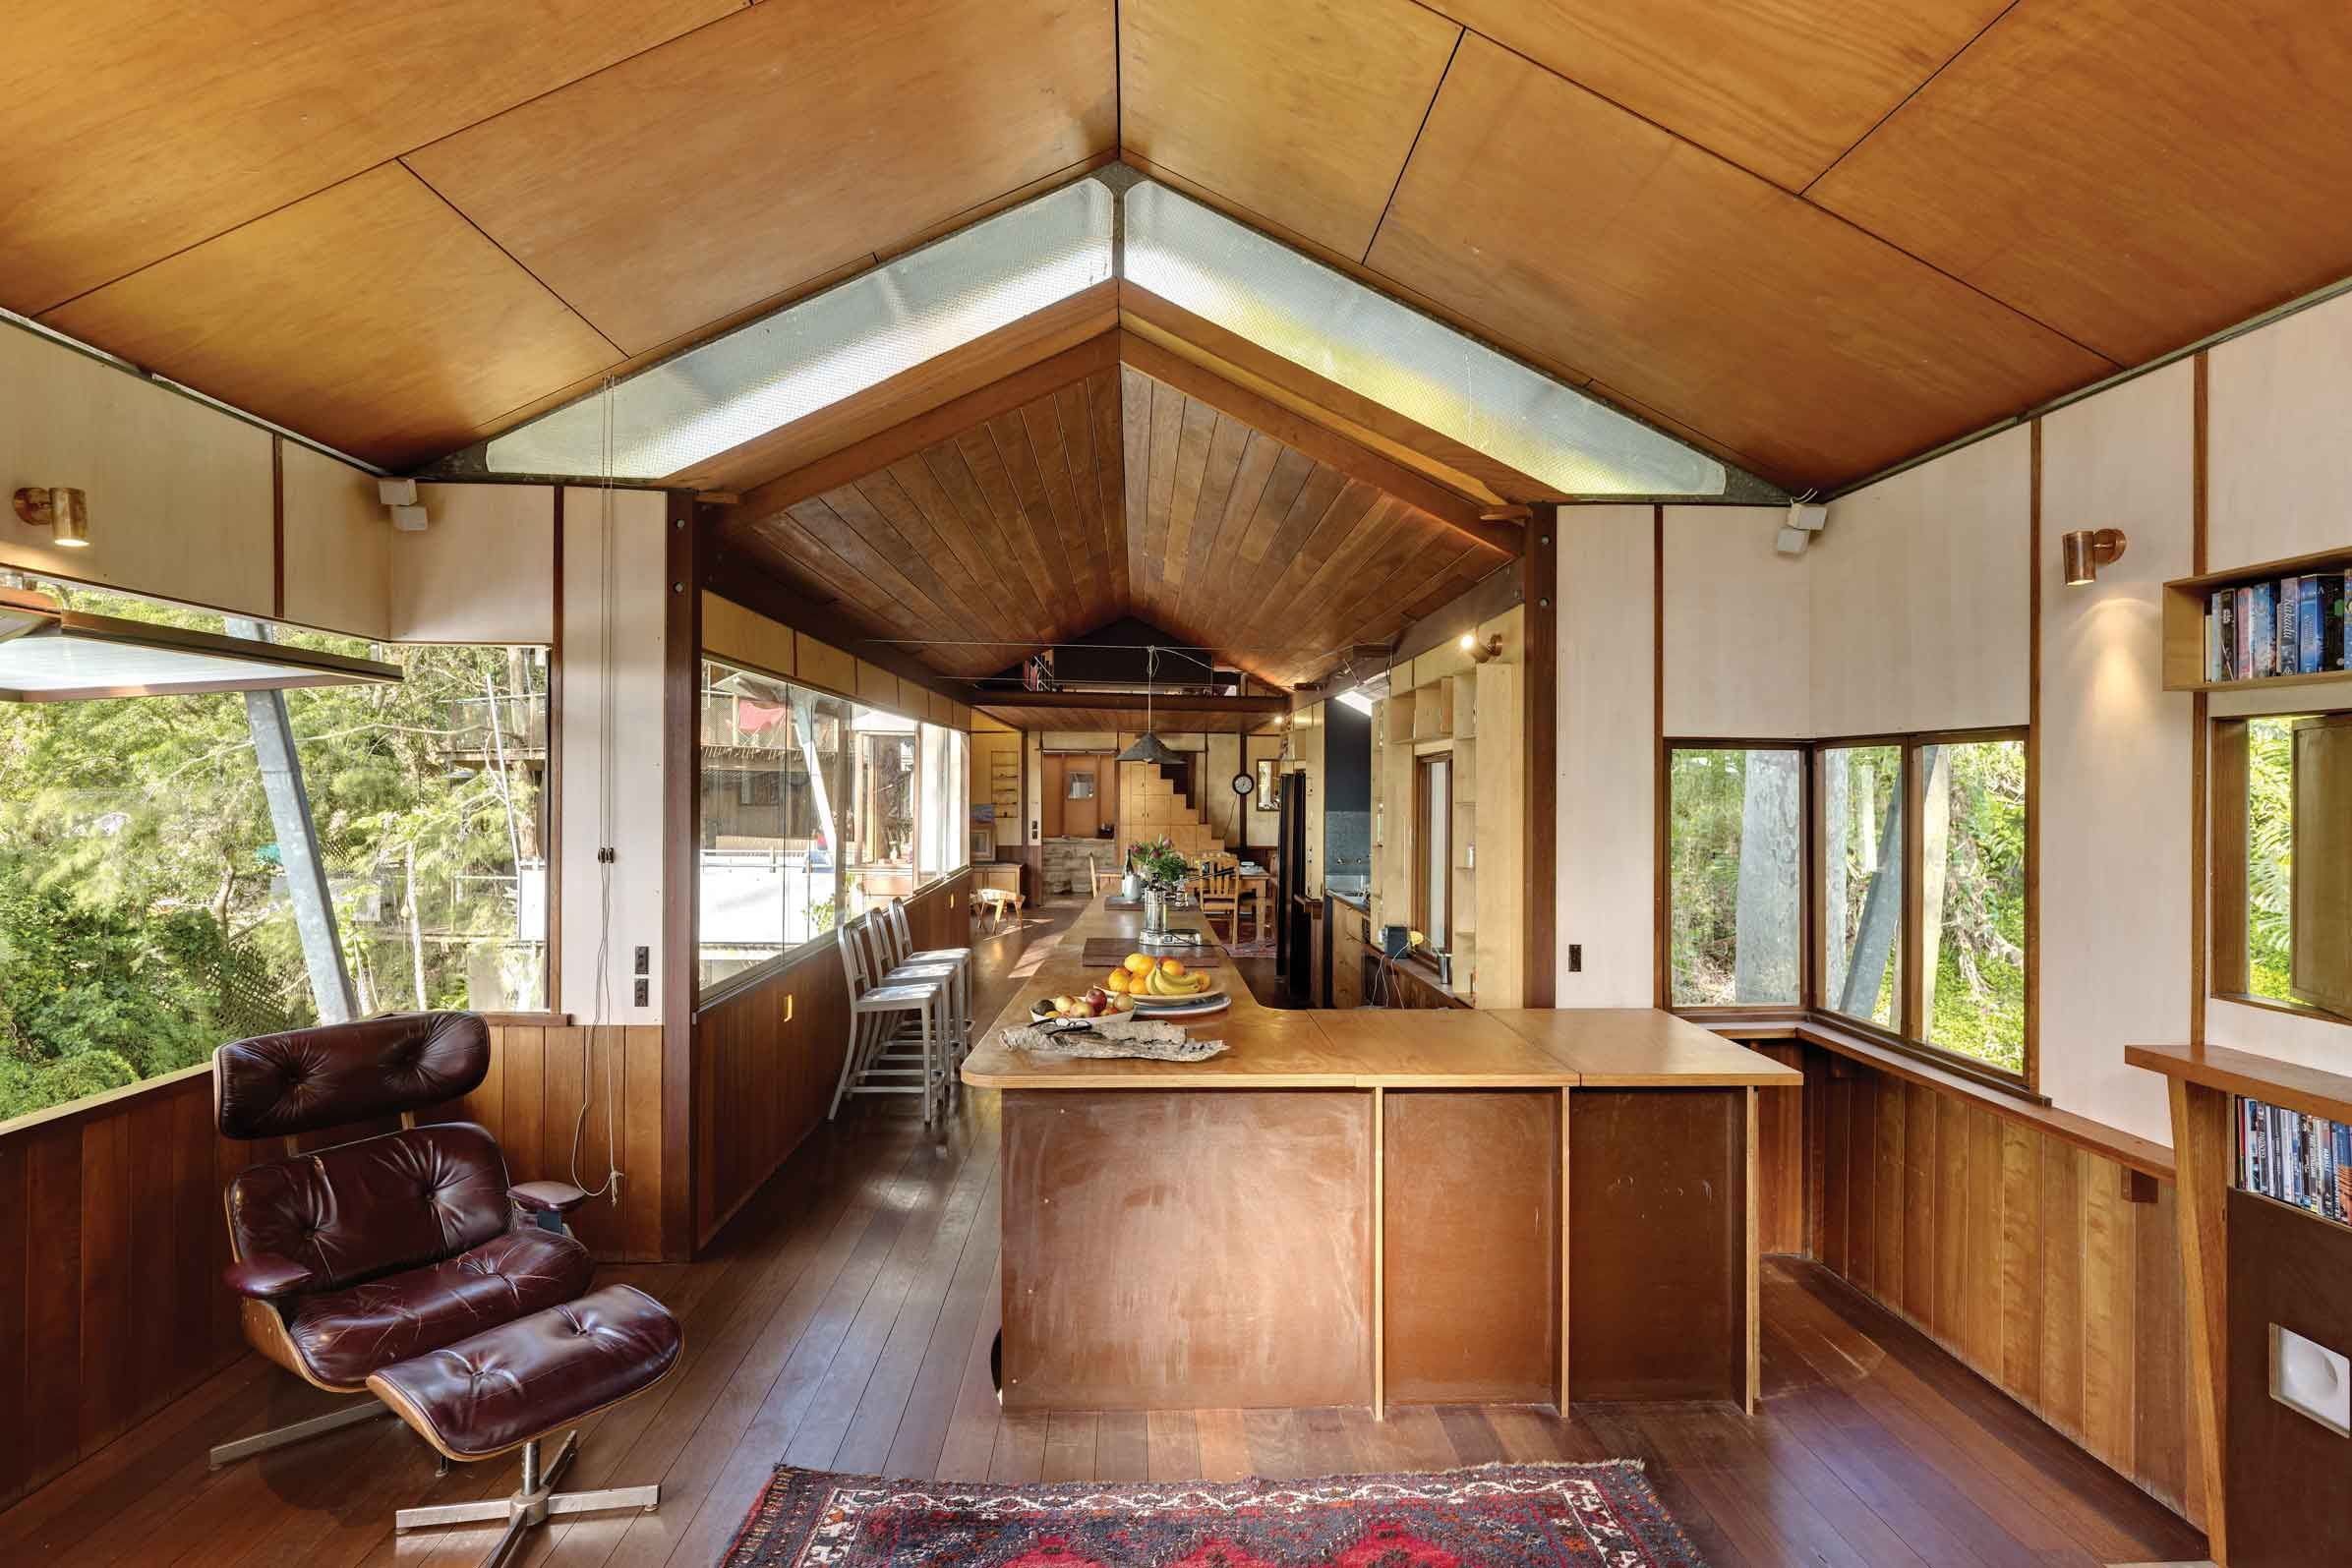 Architect designed house for sale in clareville beach west head by peter stutchbury also rh ar pinterest